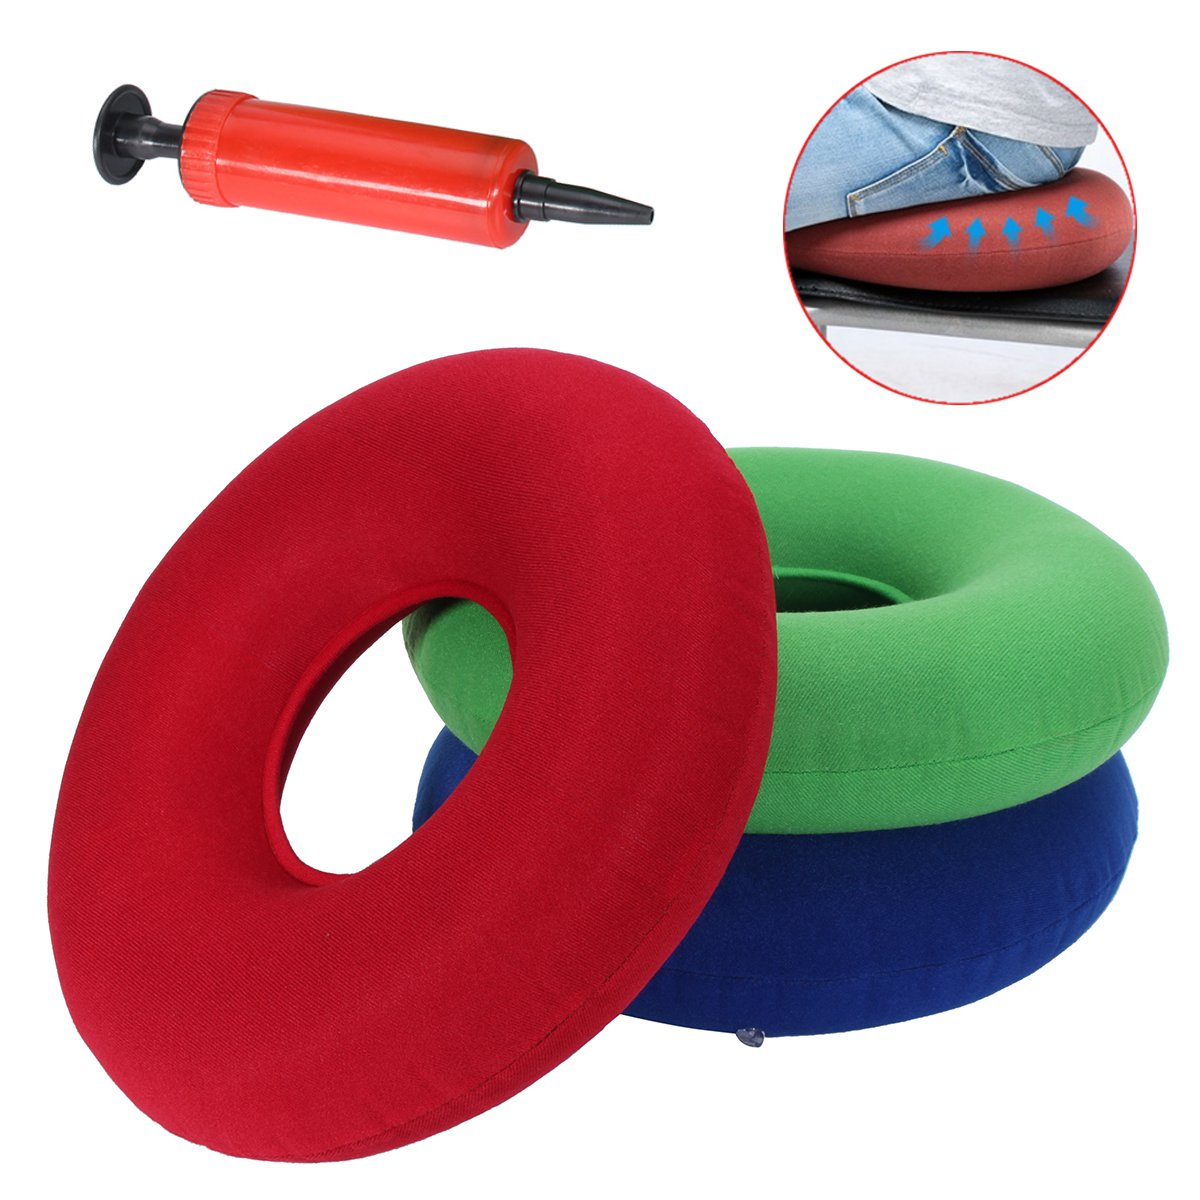 35cm Inflatable Ring Round Medical PVC Seat Cushion Sitting Donut Air Pillow Massage Mattress Pillow Anti Hemorrhoid + Pump